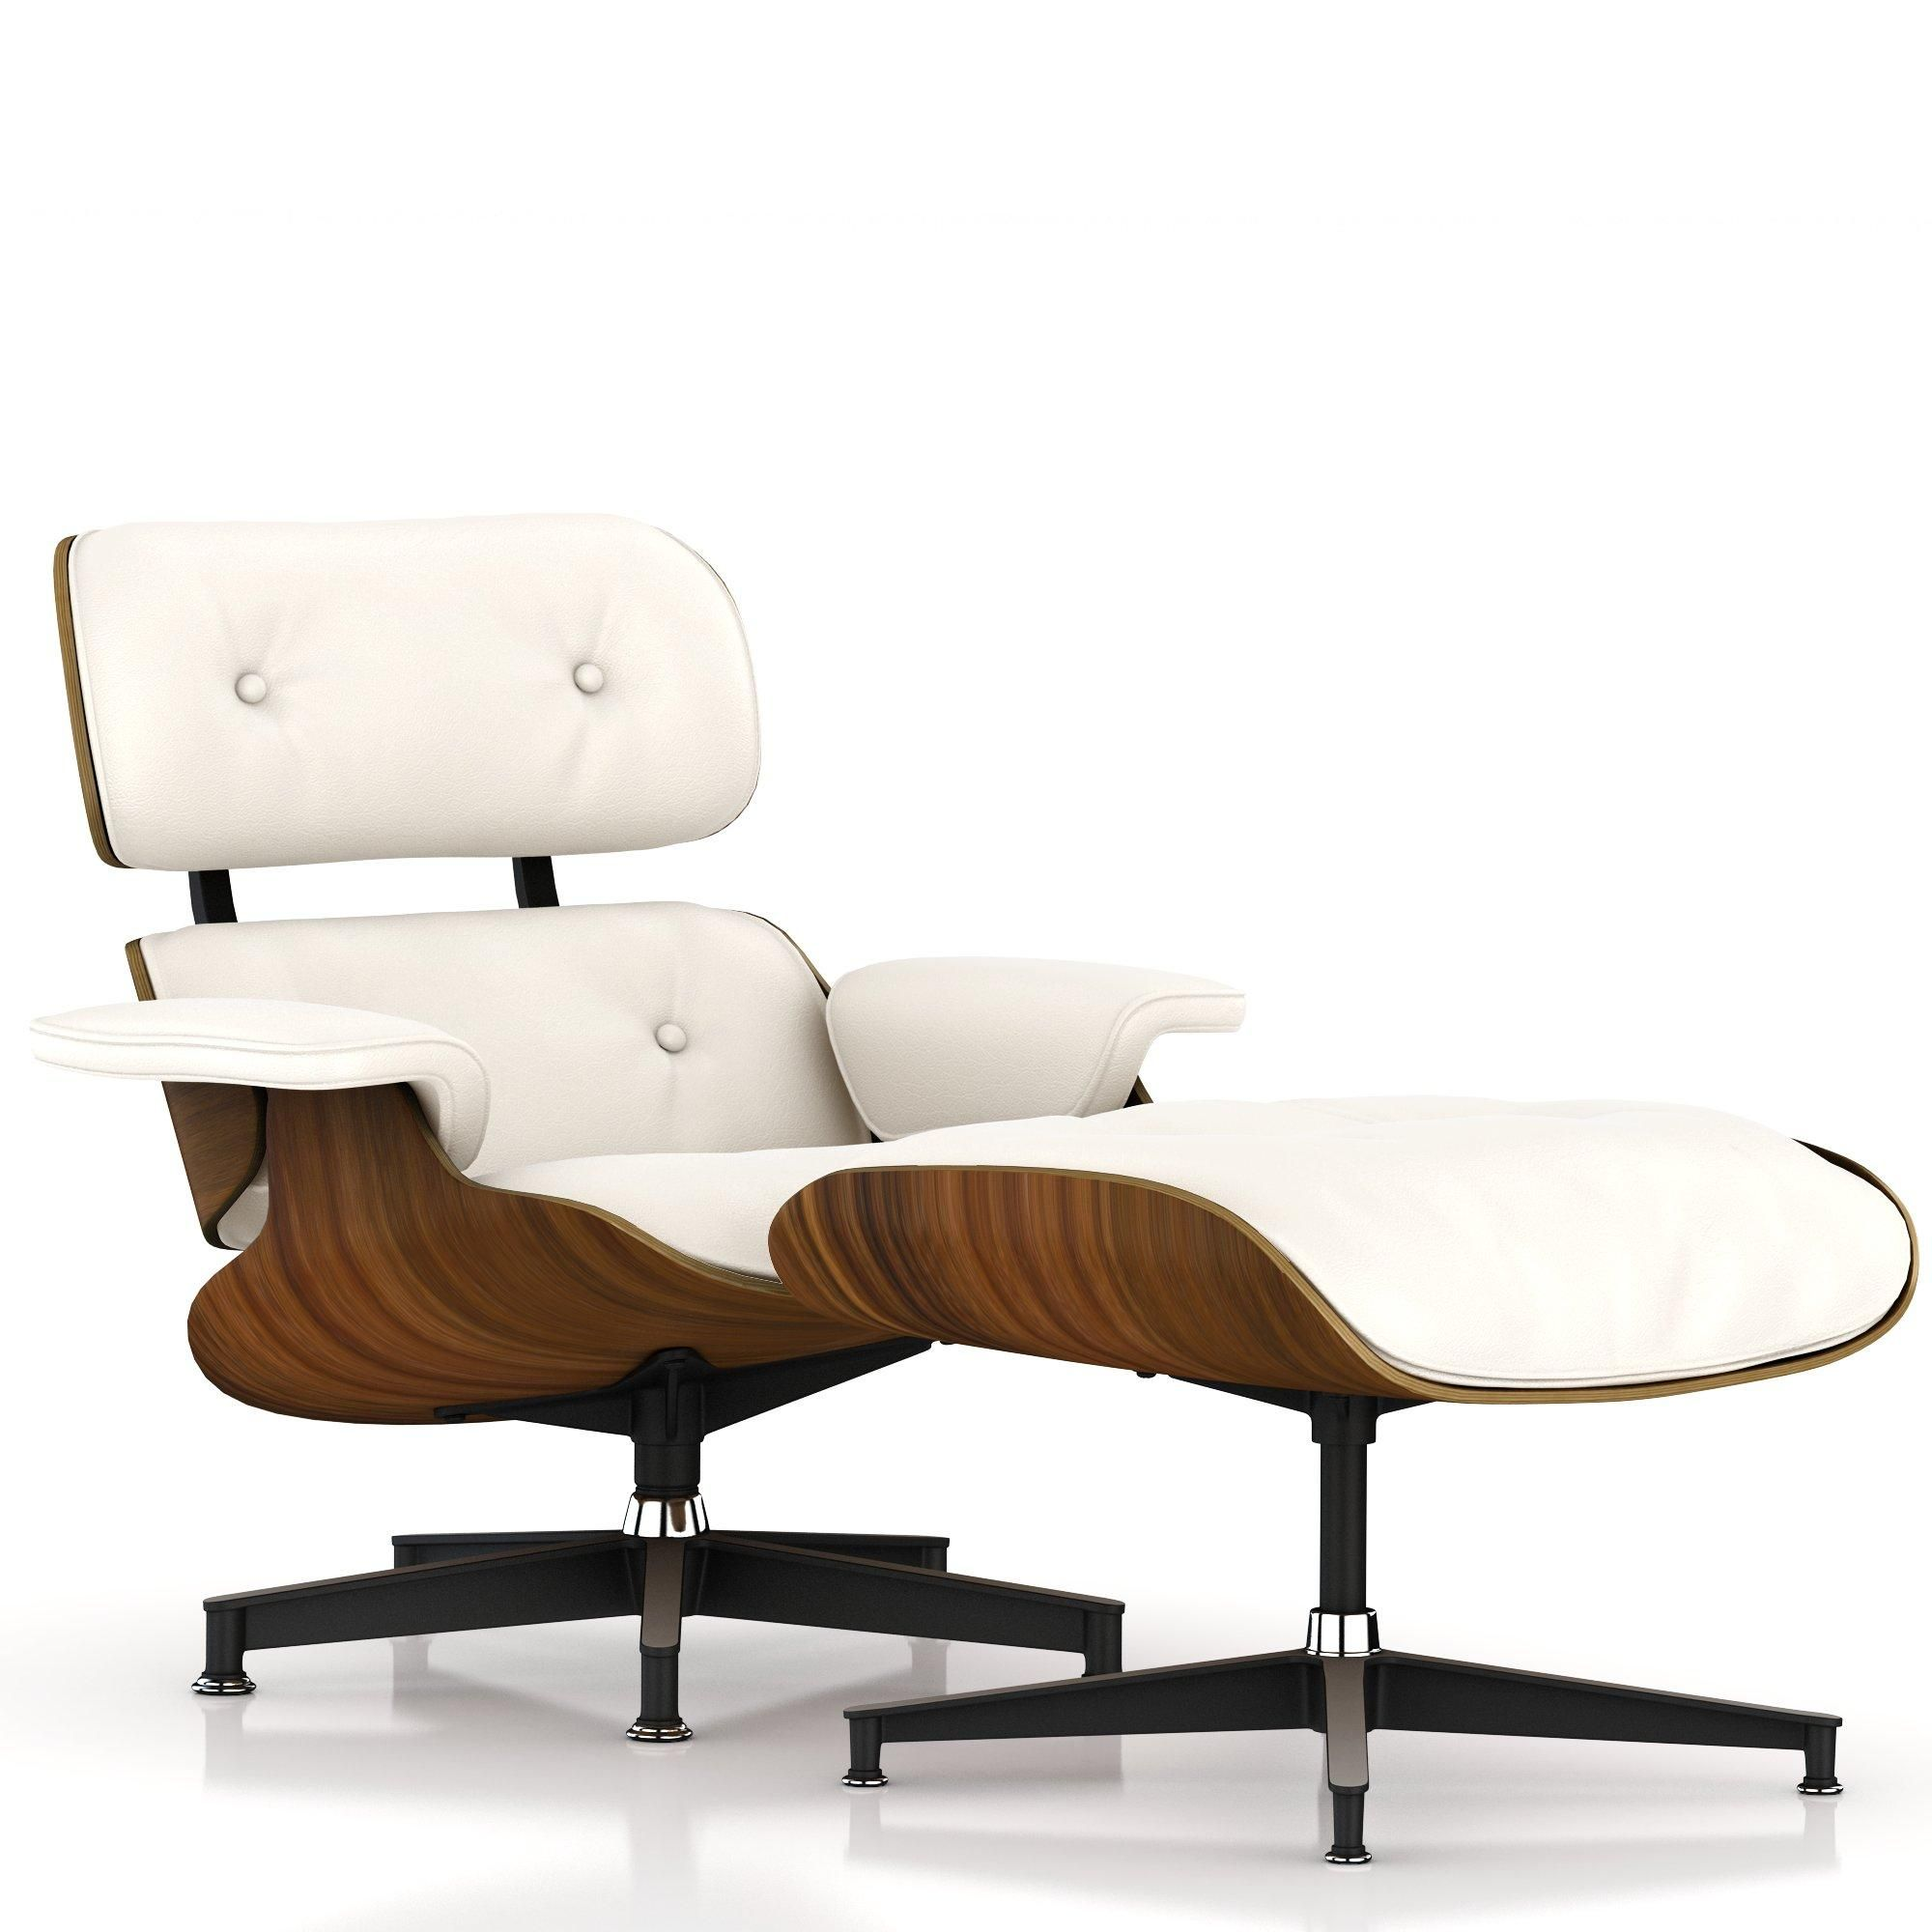 Eames Lounge Chair And Ottoman   VeneerOiled Santos Palisander +  MaterialMcl Leather Pearl